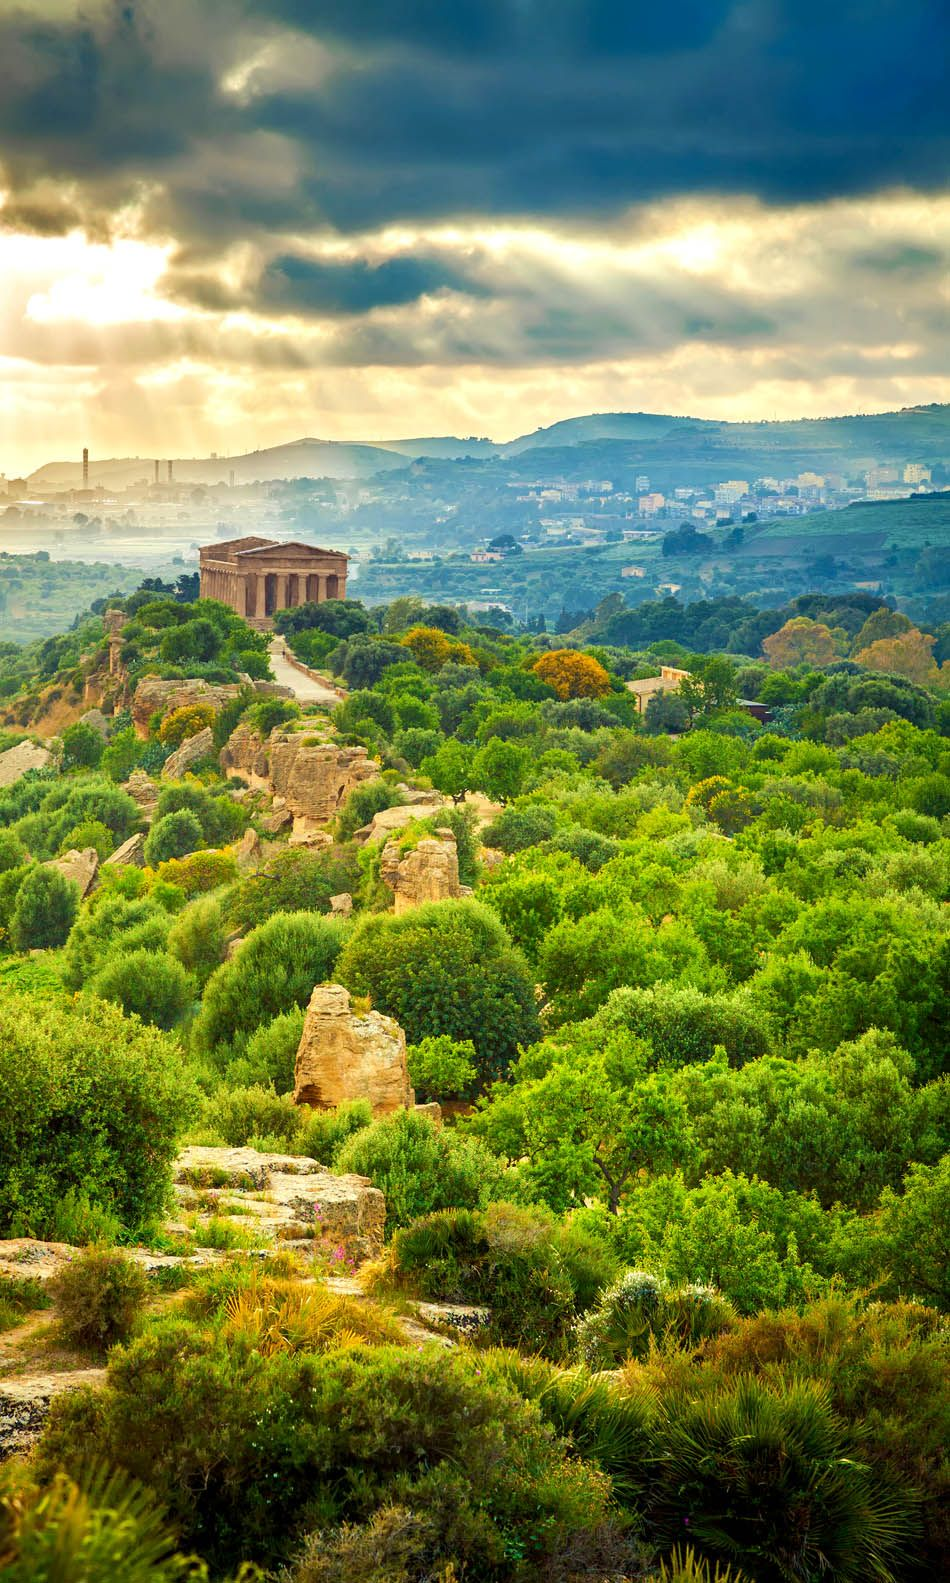 Valley of Temples near Agrigento, Sicily 3